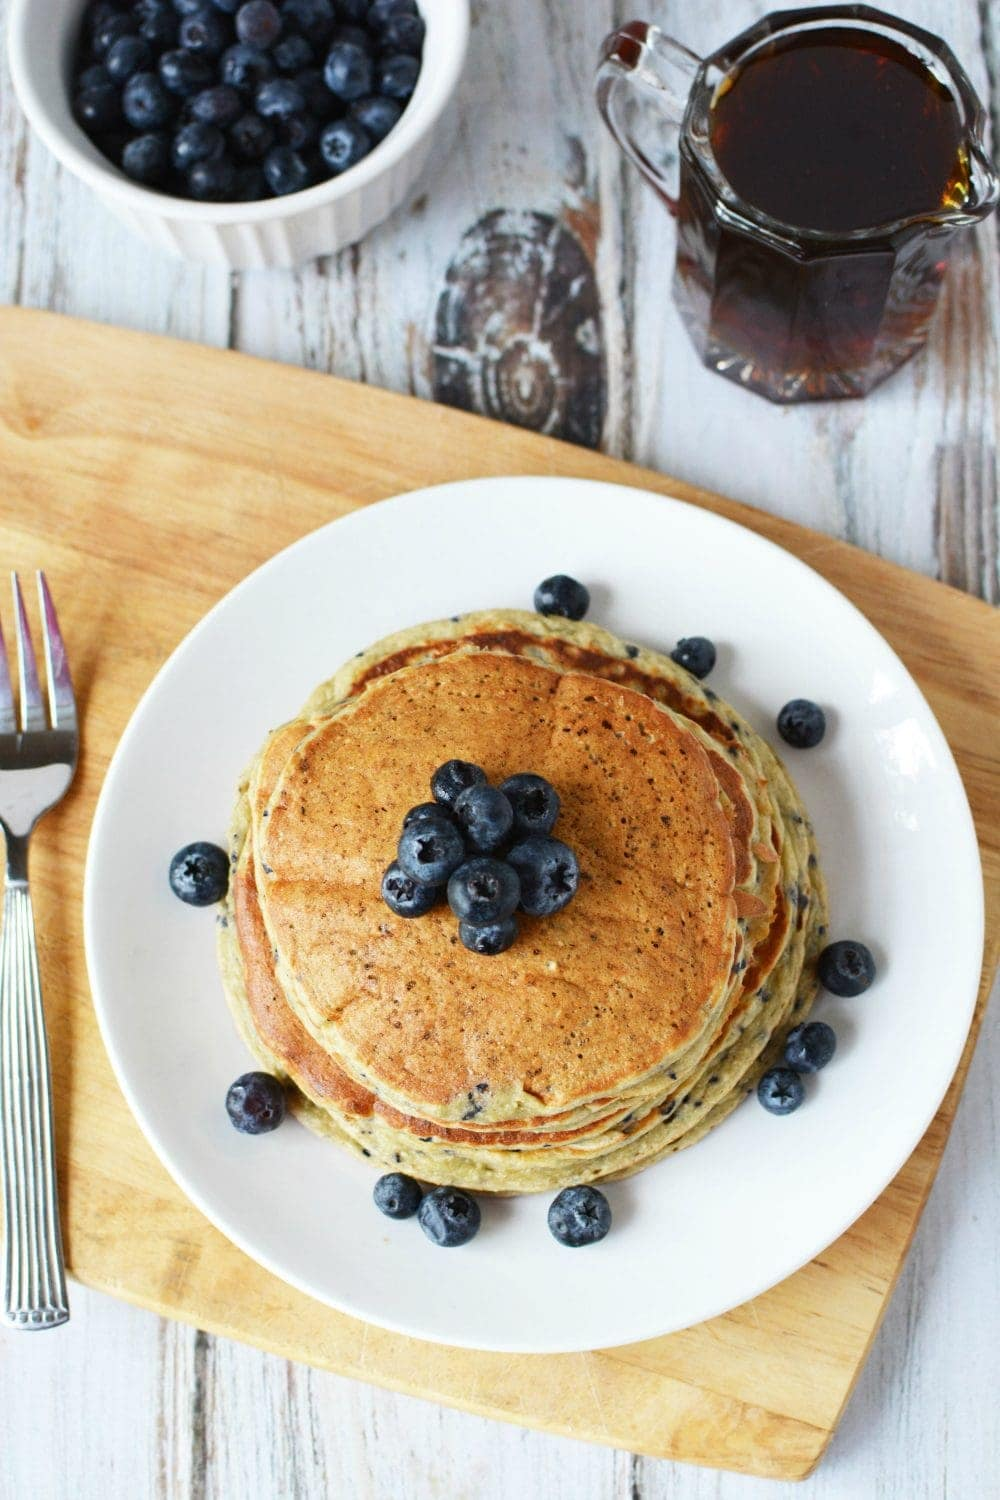 Pancakes made with protein powder - lemon blueberry